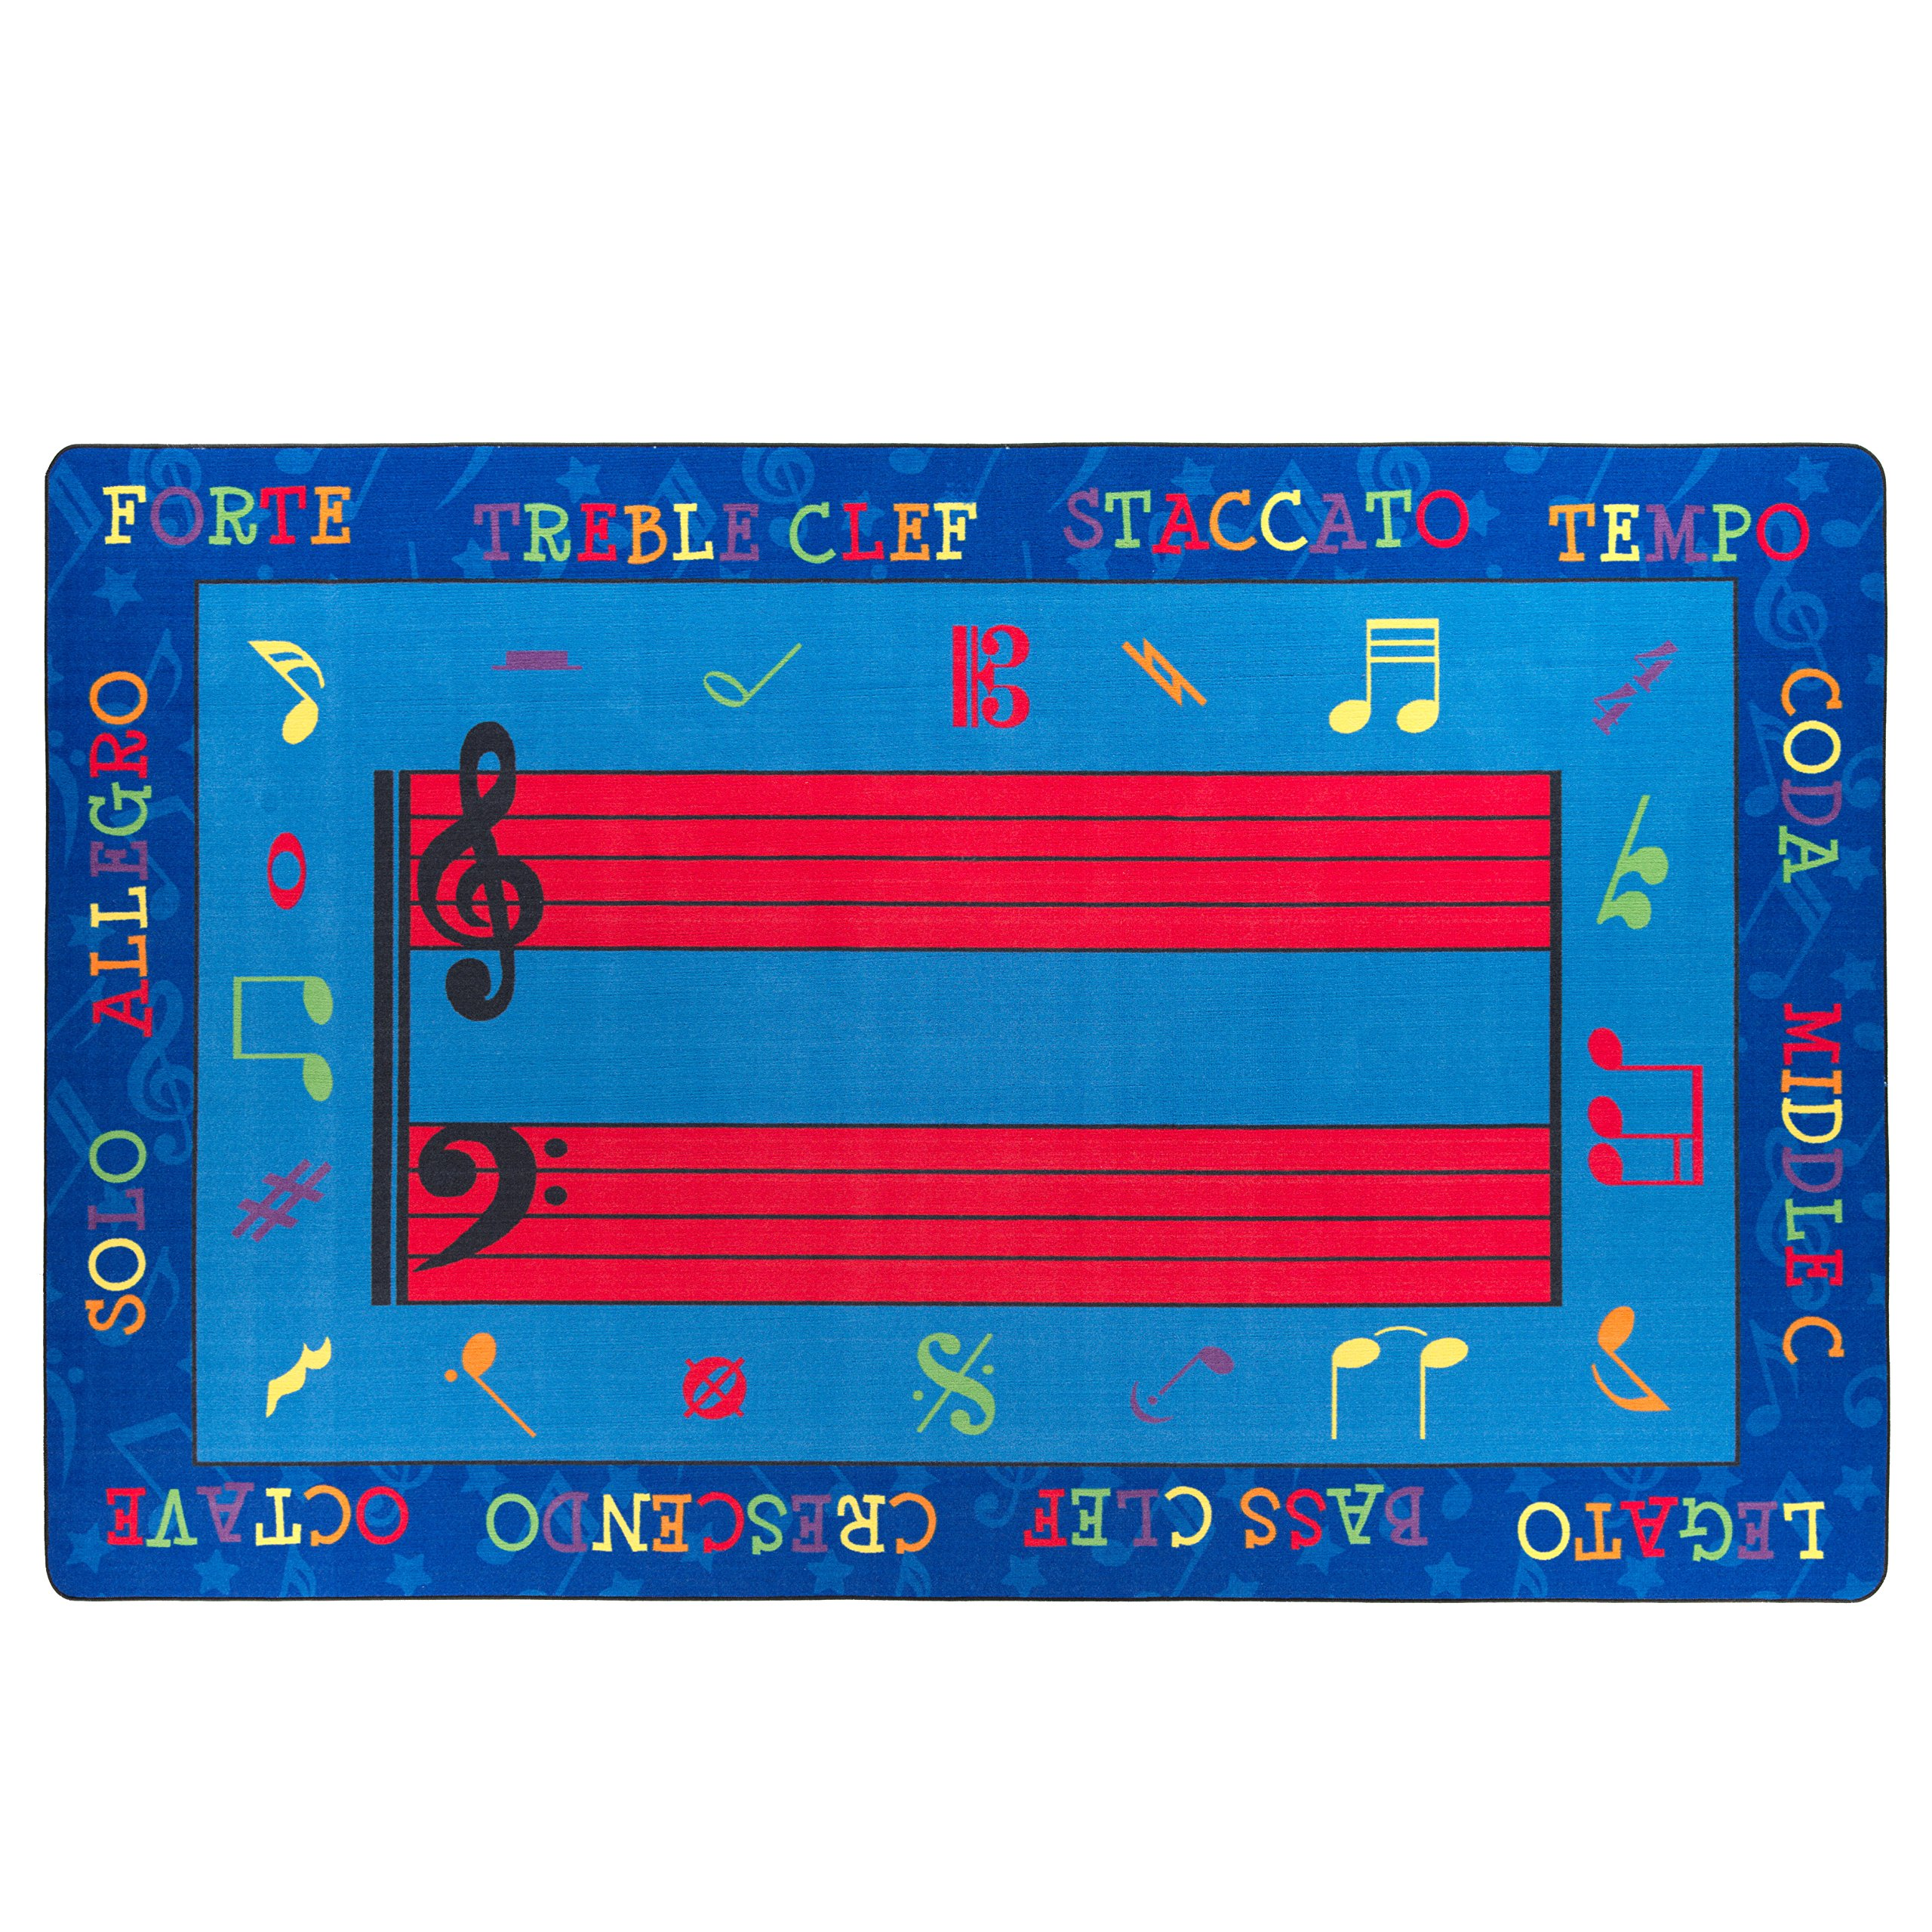 Flagship Carpets FE118-58A Dot Spots Seating Rug, Everyone Has a Spot on This Colorful Design, 10'9'' x 13'2'' Seats 36, 129'' Length, 158'' Width, Multi-Color by Flagship Carpets